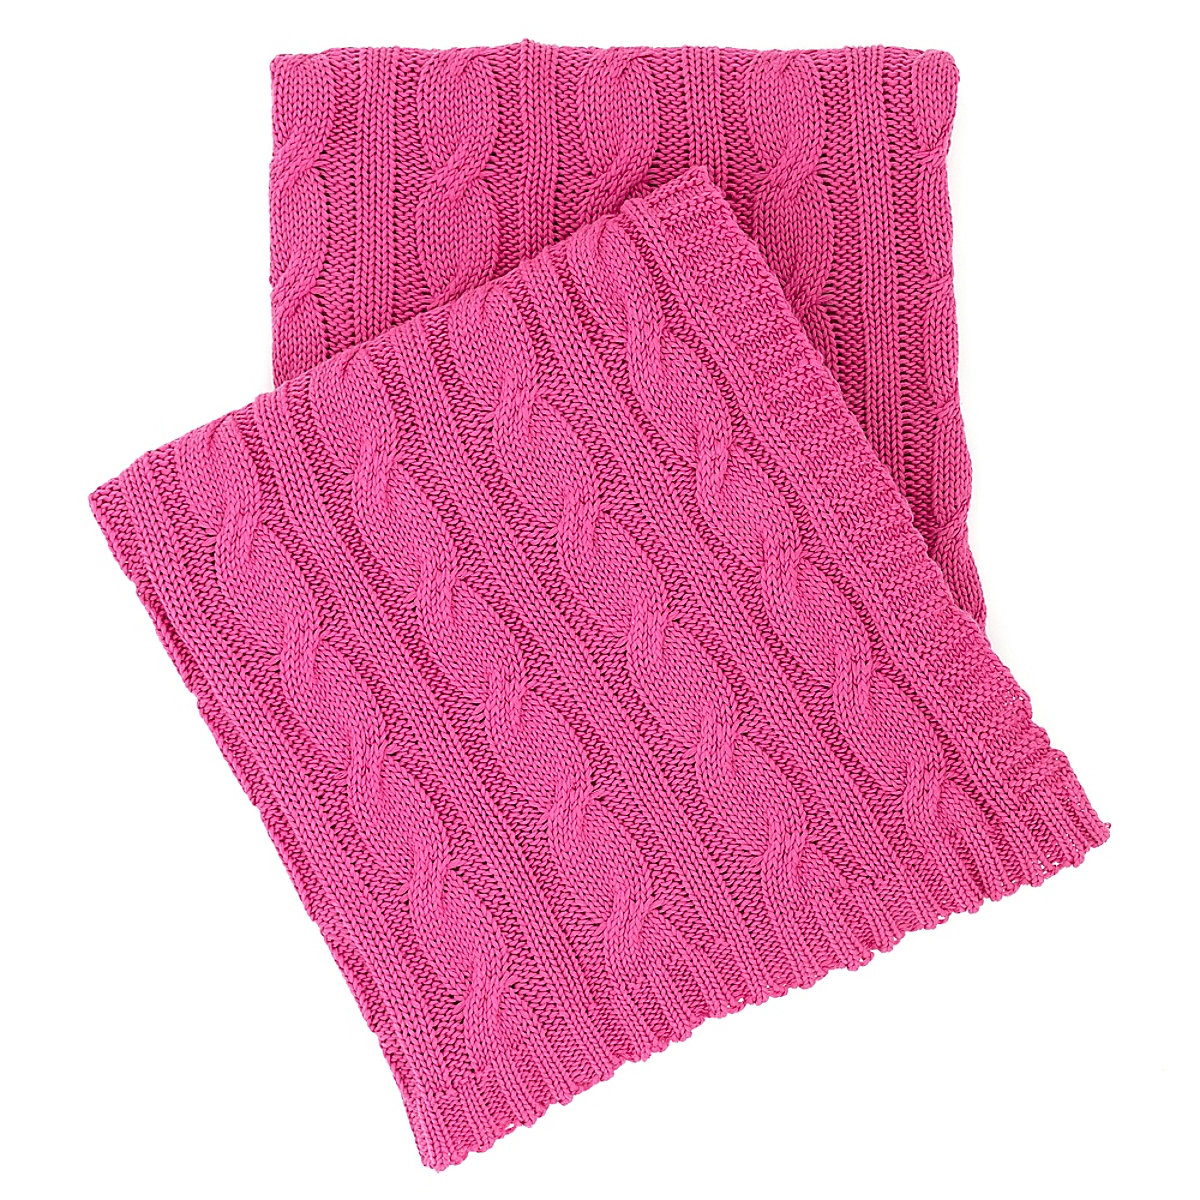 Cozy Cable Knit Blanket Bright Pink